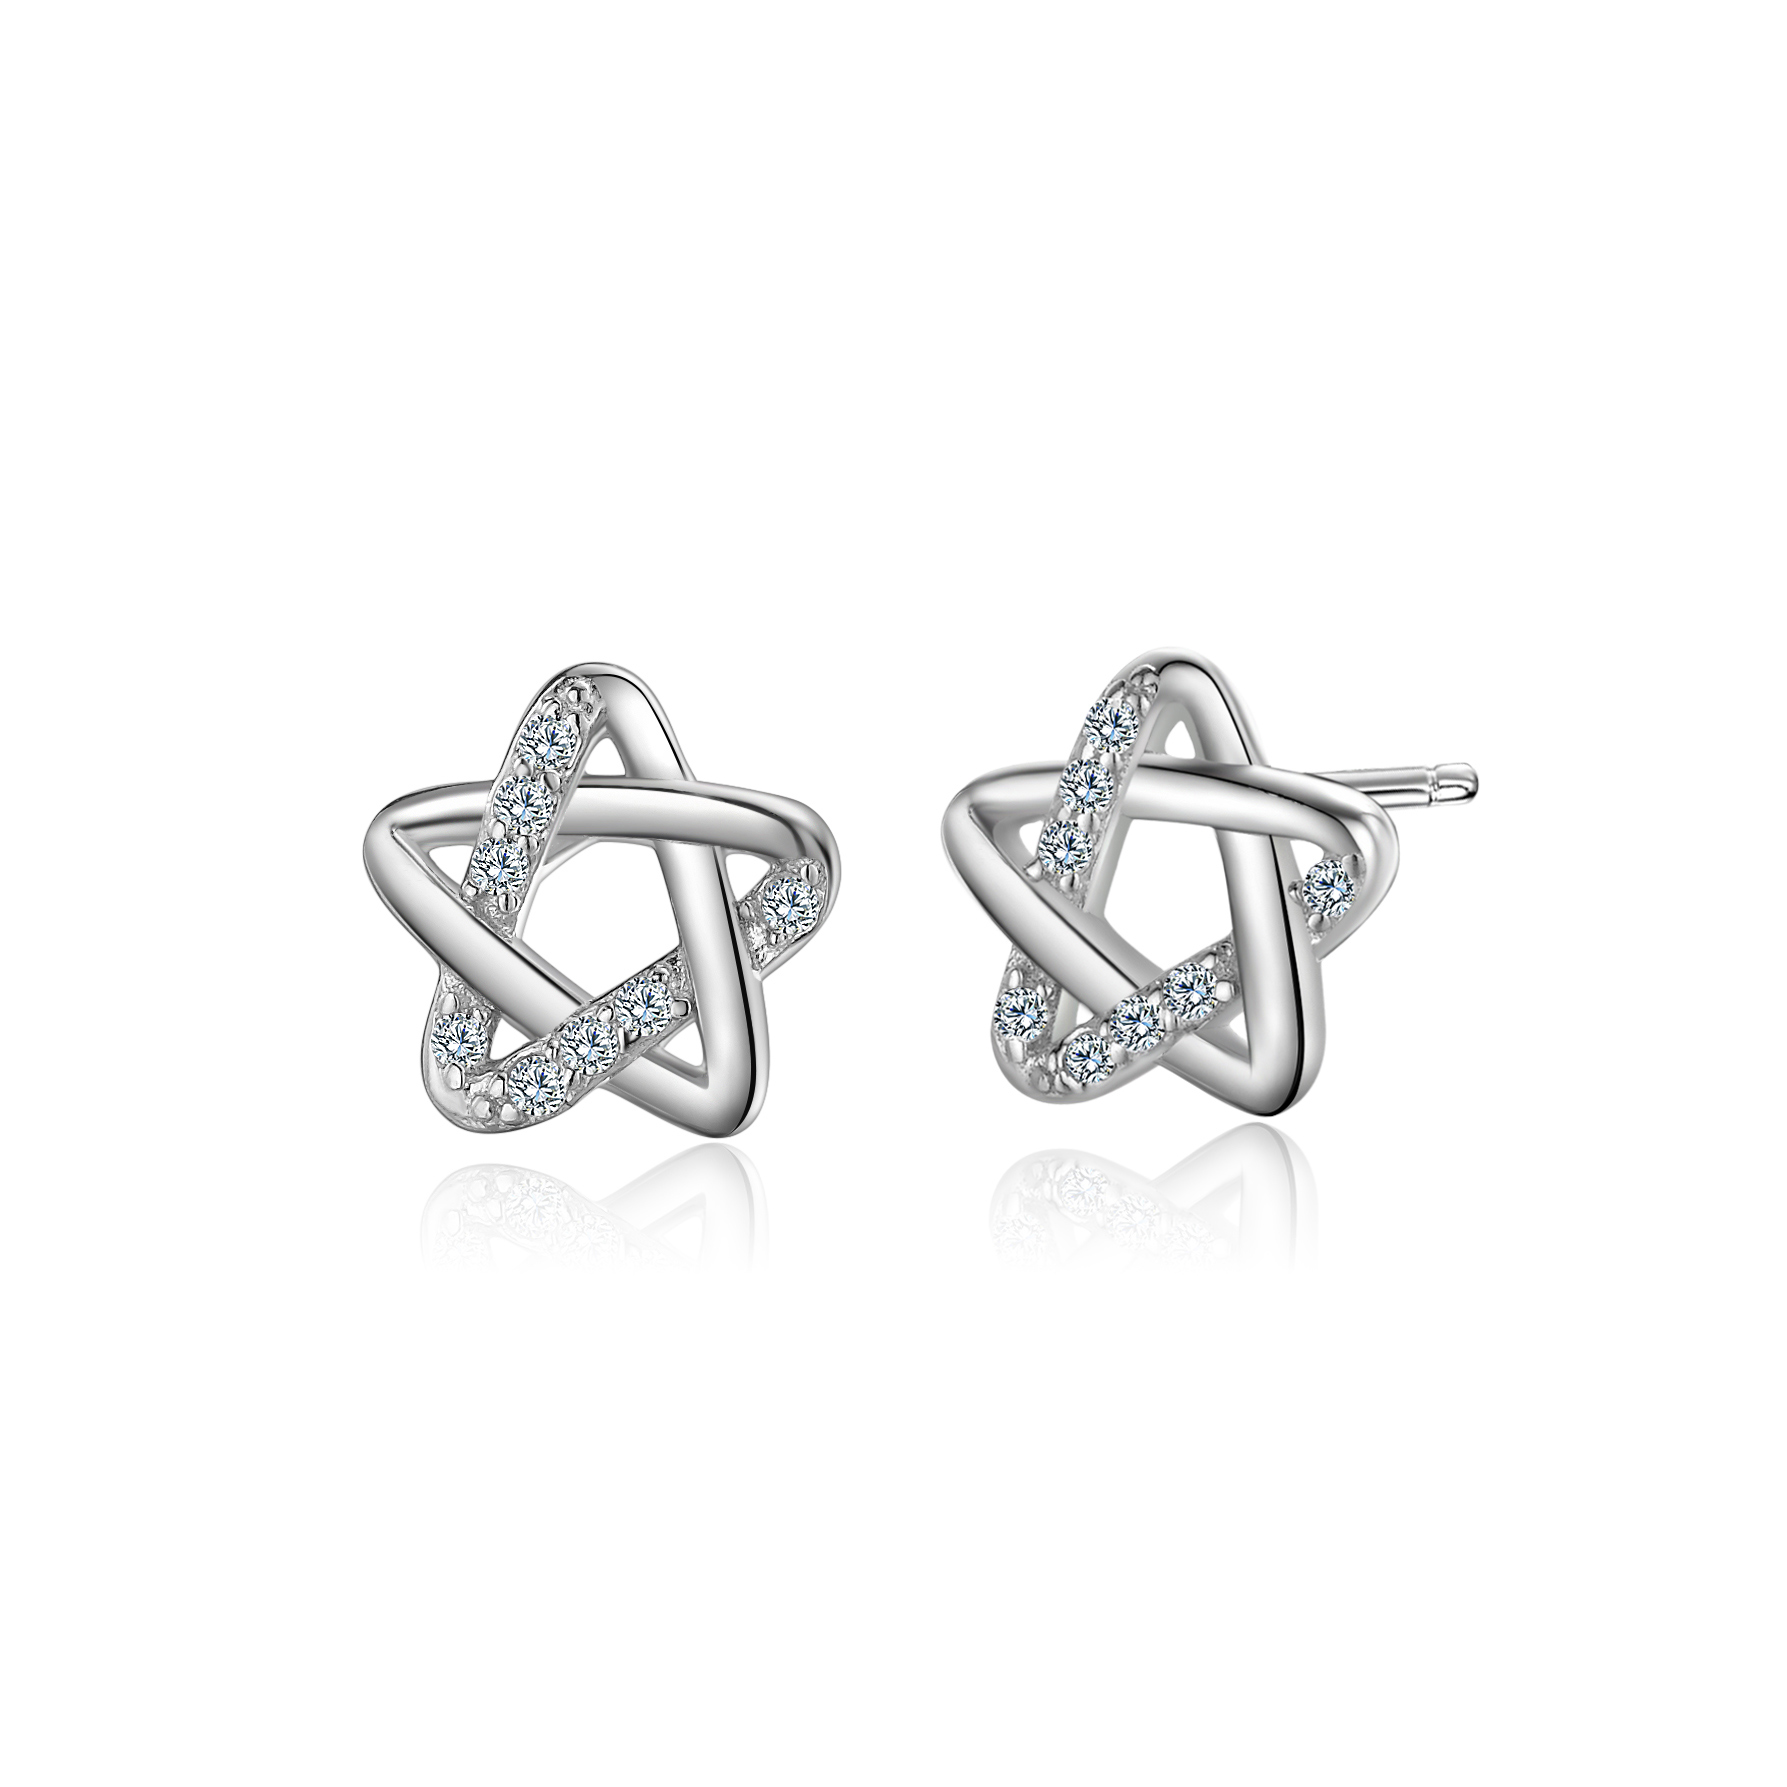 Whcreat Star Shaped 925 Sterling Silver Earrings Studs For Women S